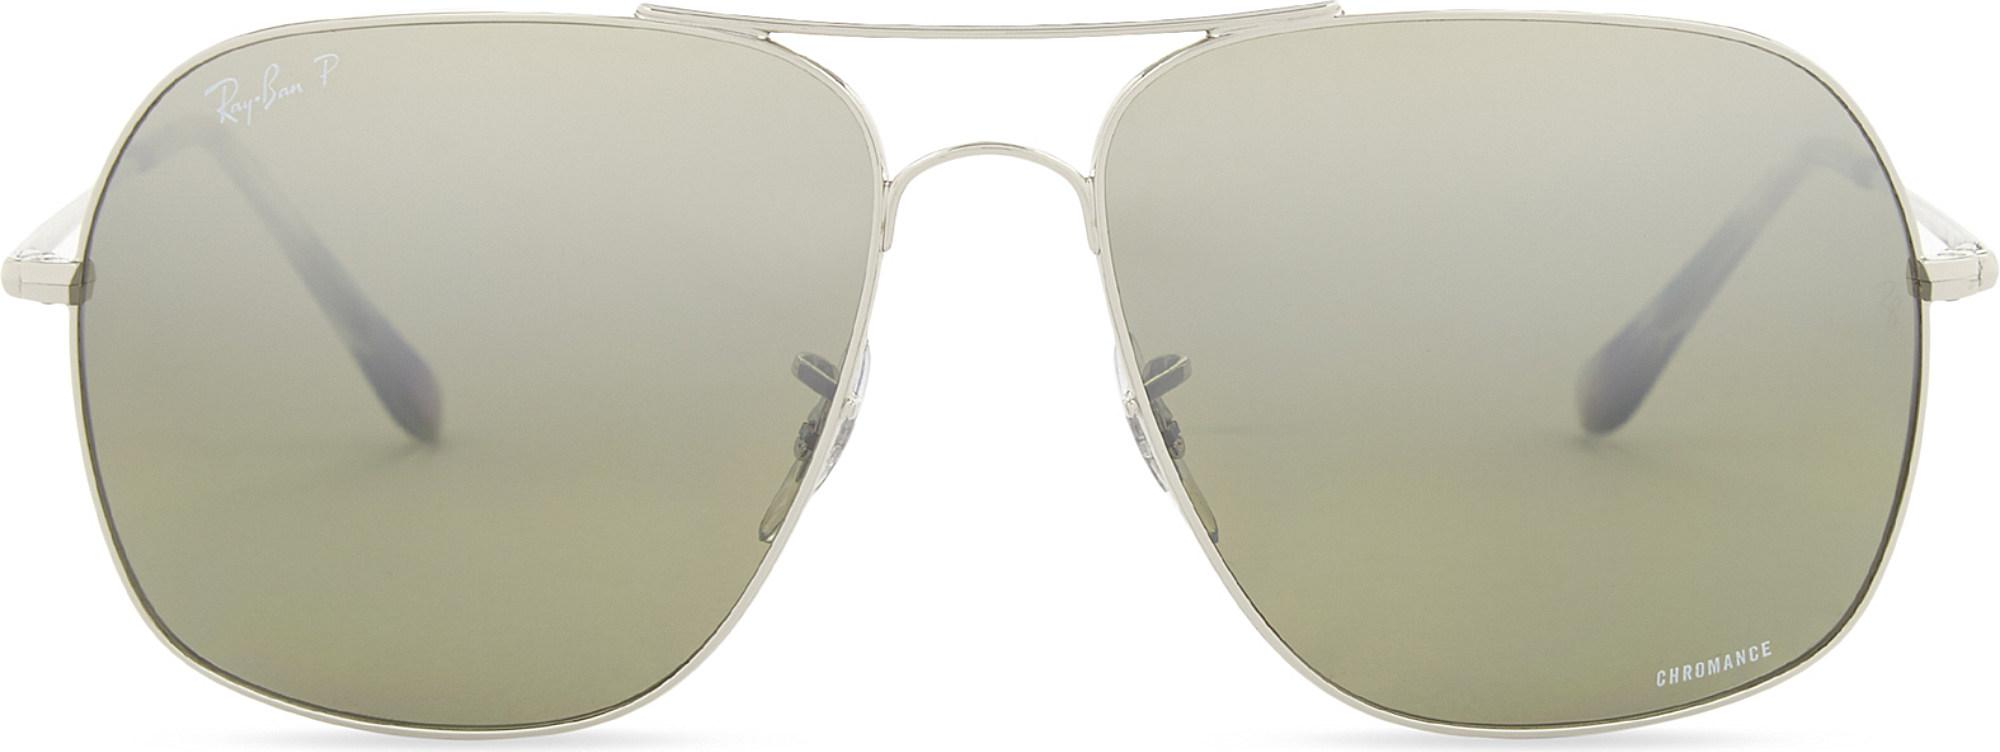 2bf07eff04 Ray-Ban Rb3587 Chromance Square-frame Sunglasses in Metallic - Lyst